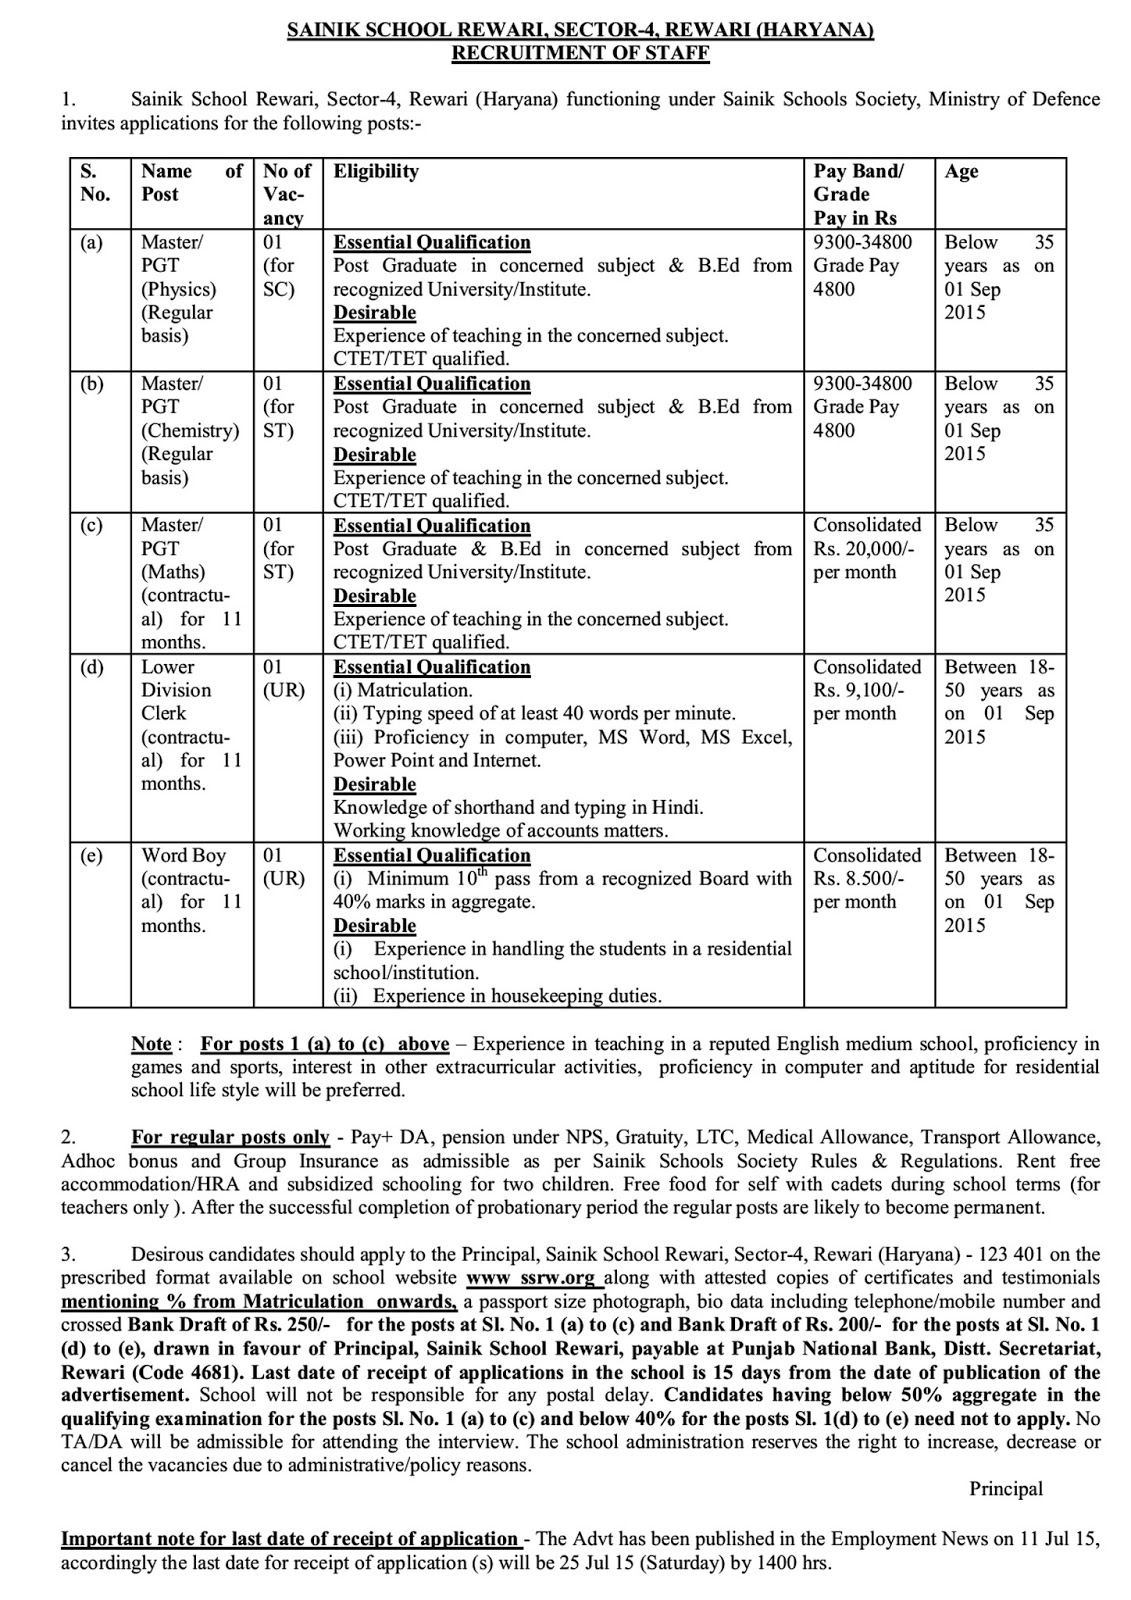 Sainik School Rewari Recruitment 2015